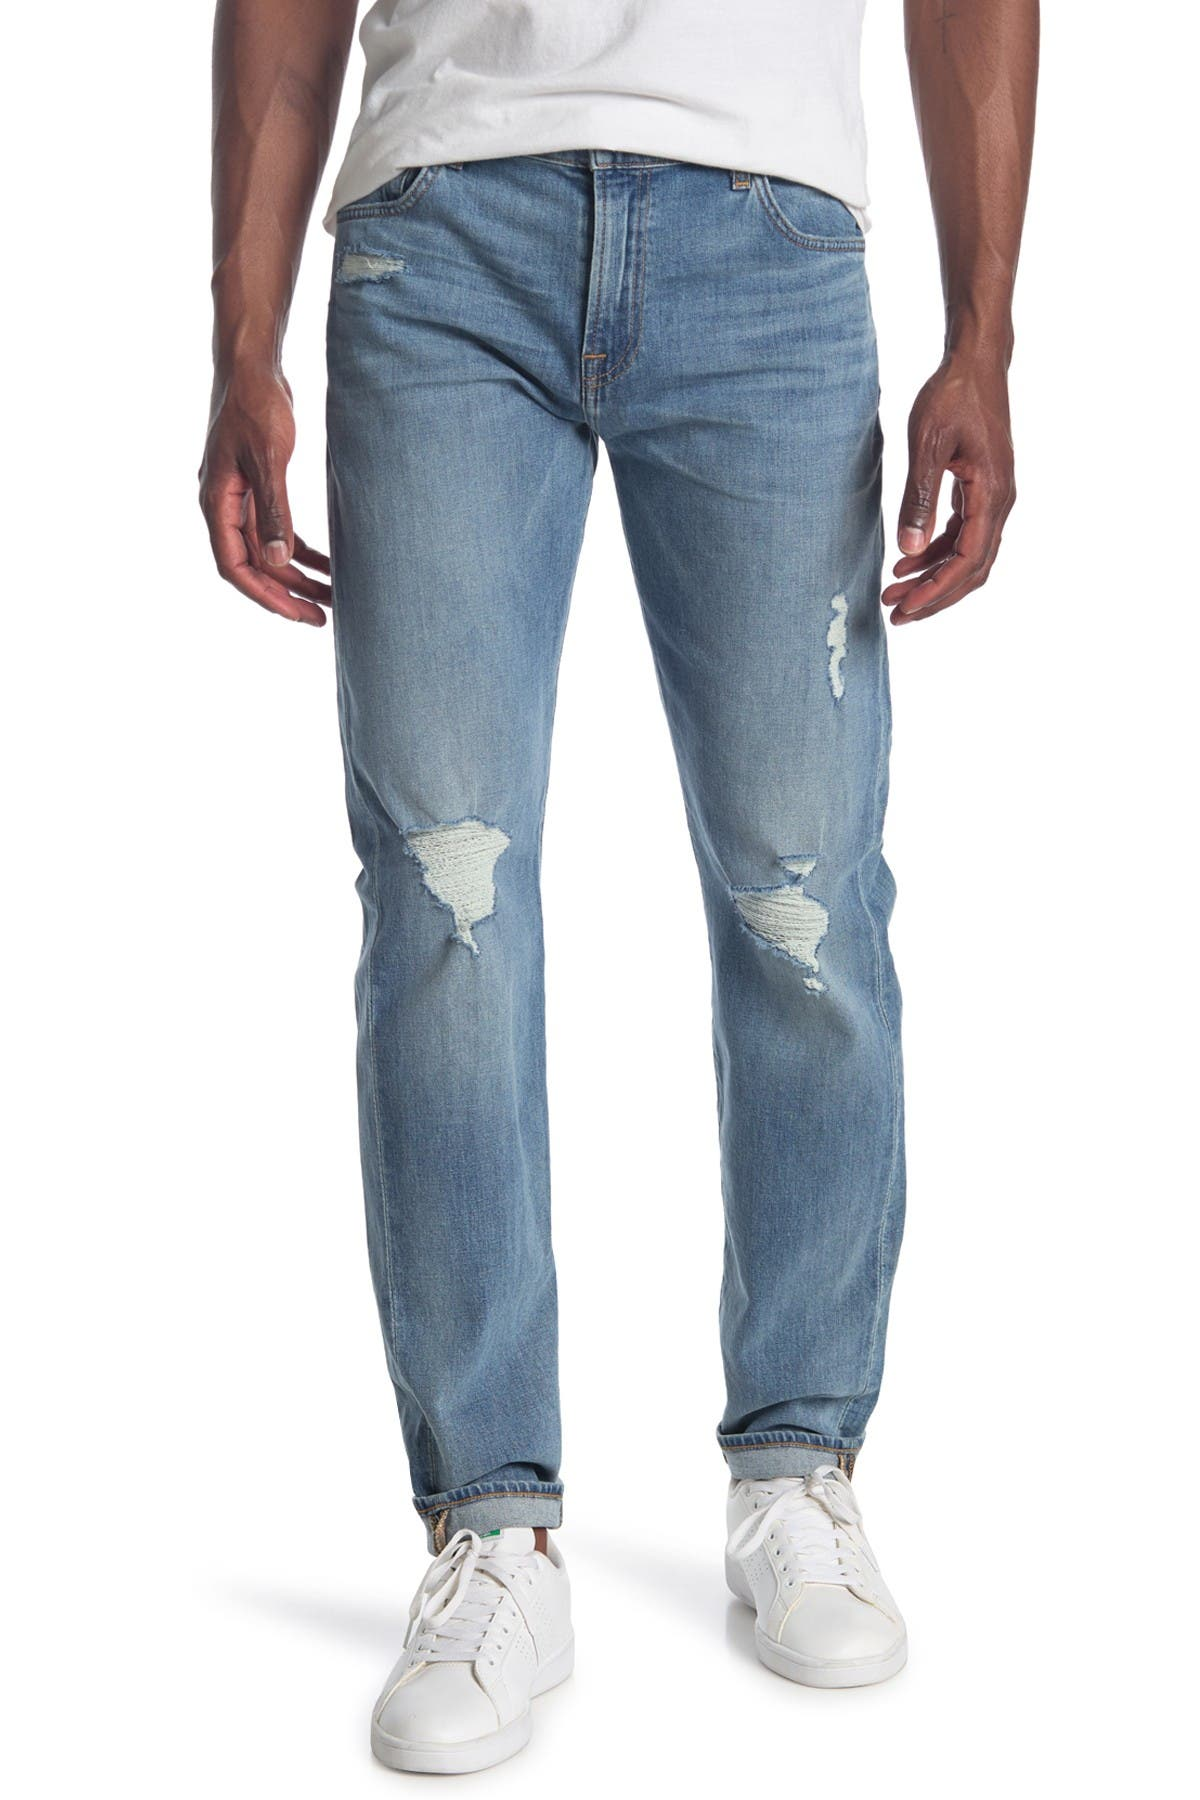 Image of 7 For All Mankind Ryley Clean Pocket Jeans